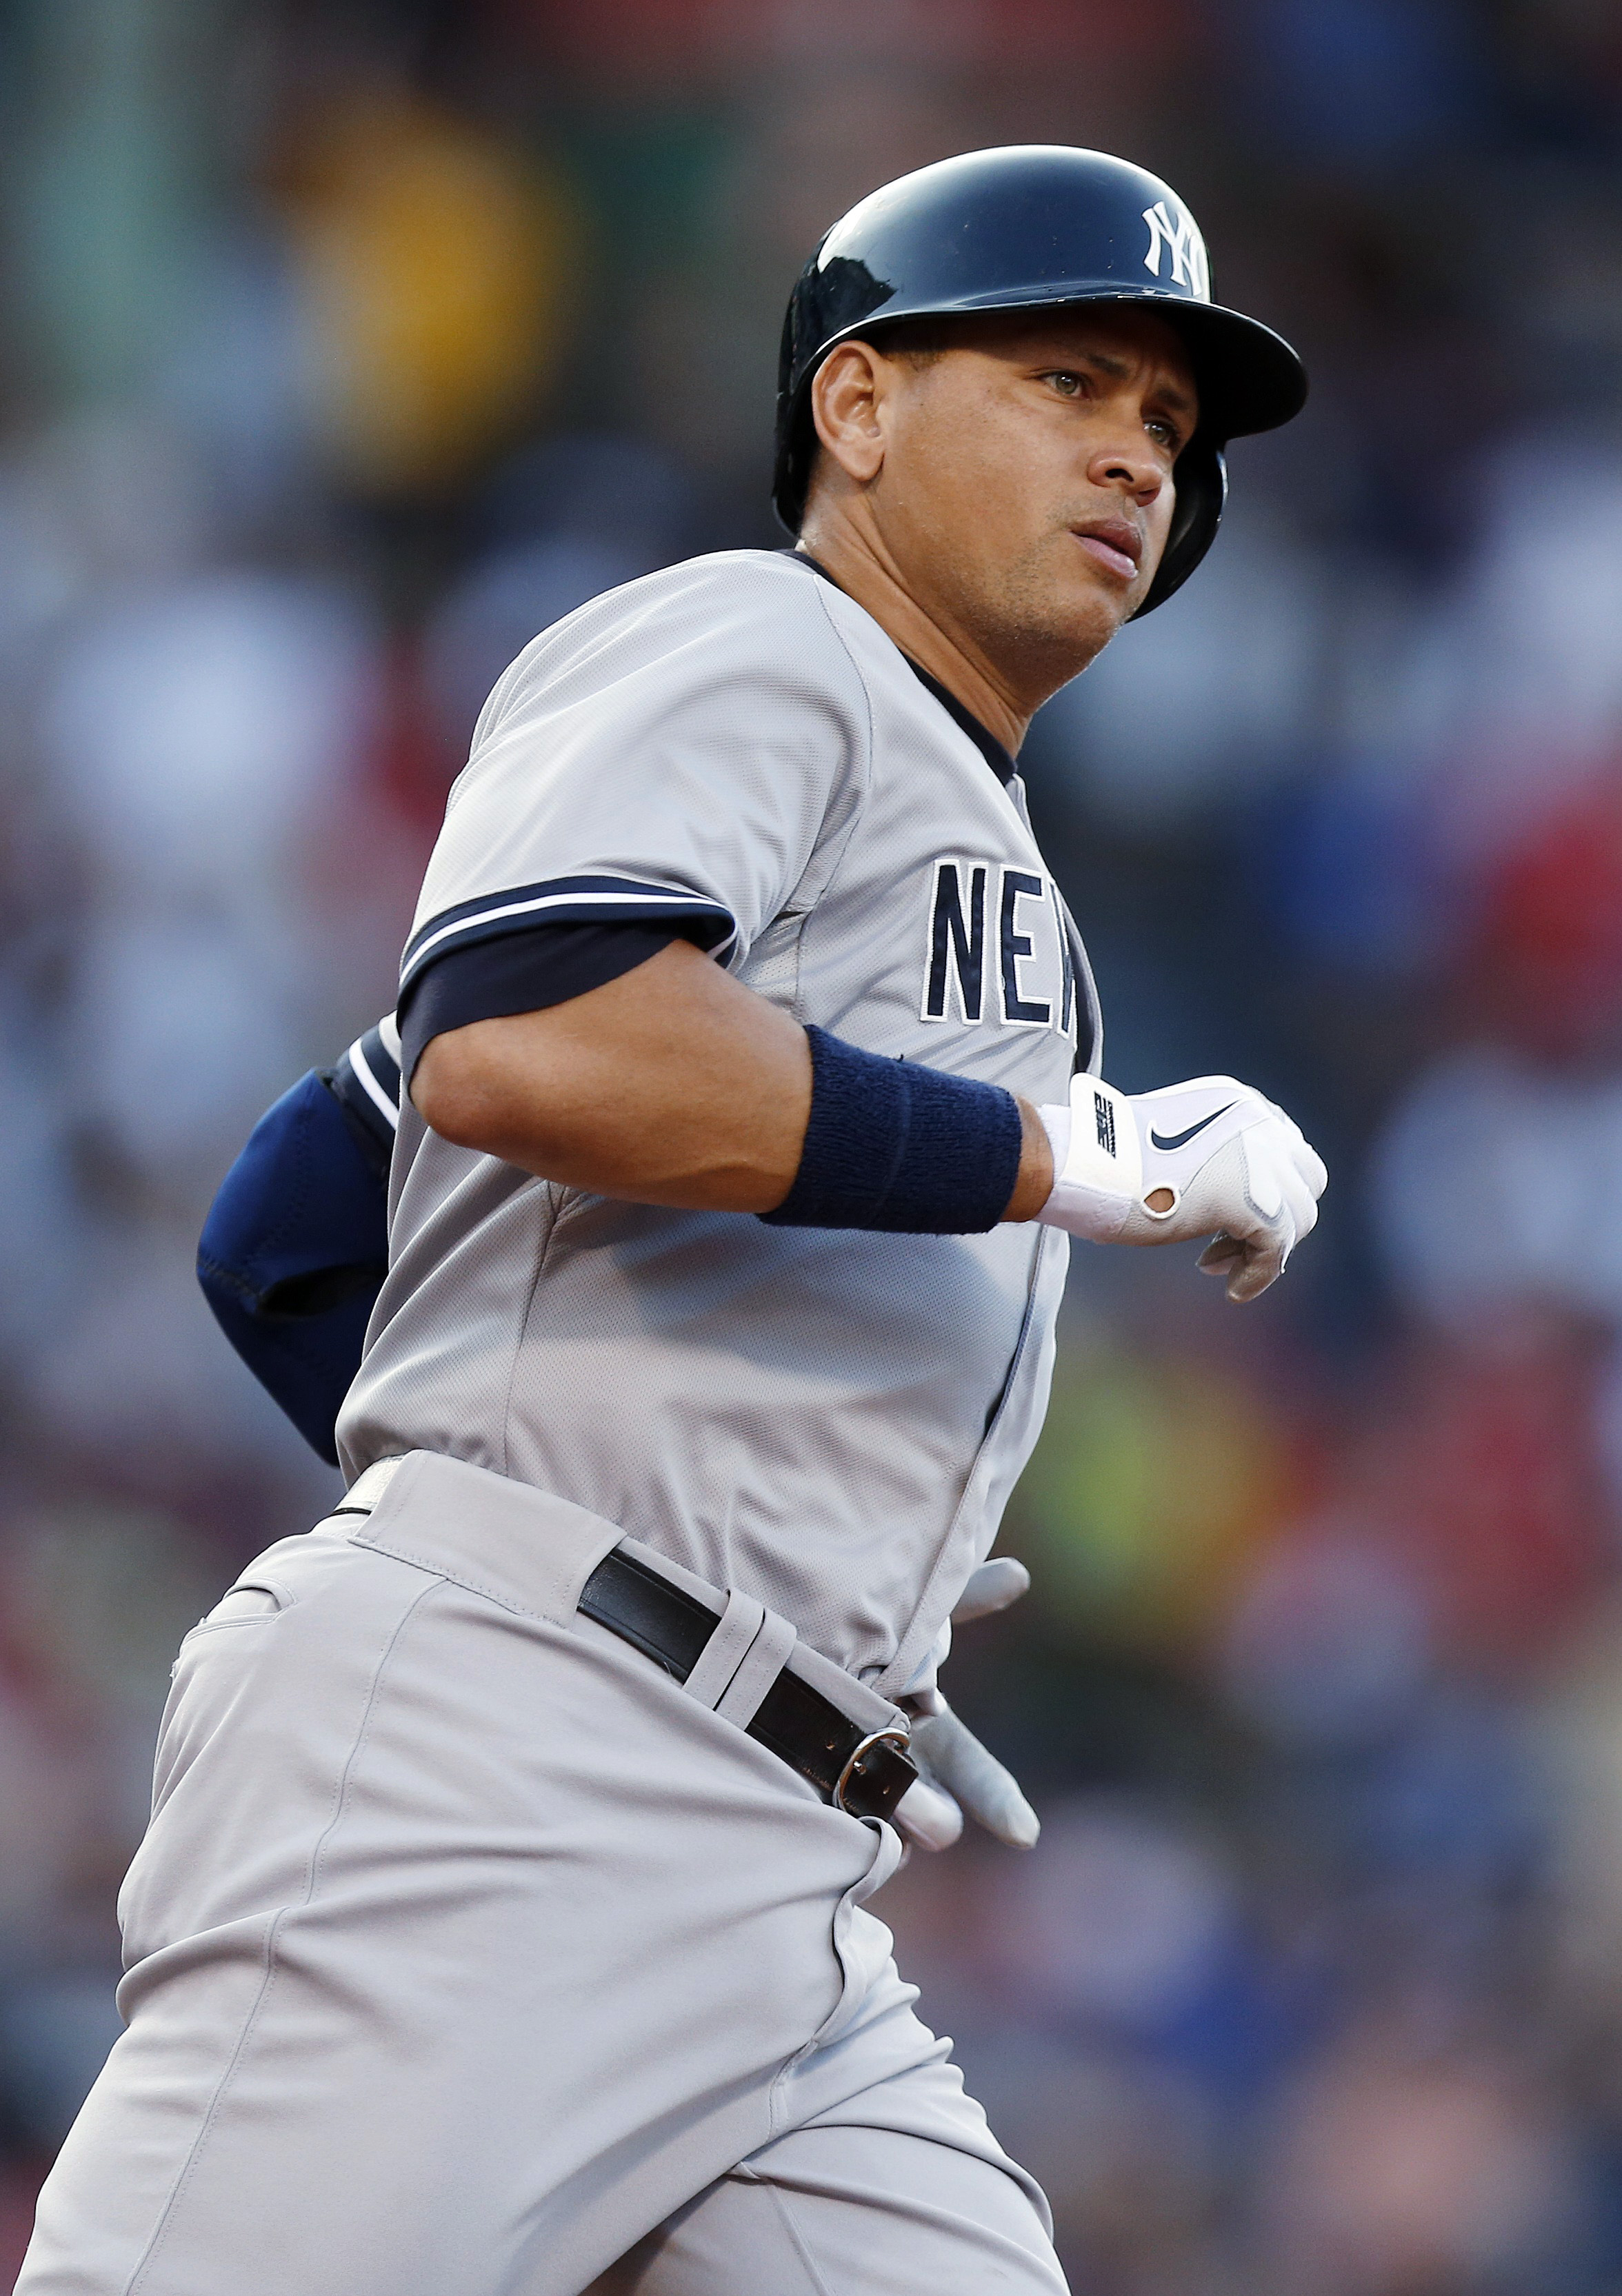 New York Yankees' Alex Rodriguez rounds first base on his solo home run during the first inning of a baseball game against the Boston Red Sox in Boston, Saturday, July 11, 2015. (AP Photo/Michael Dwyer)